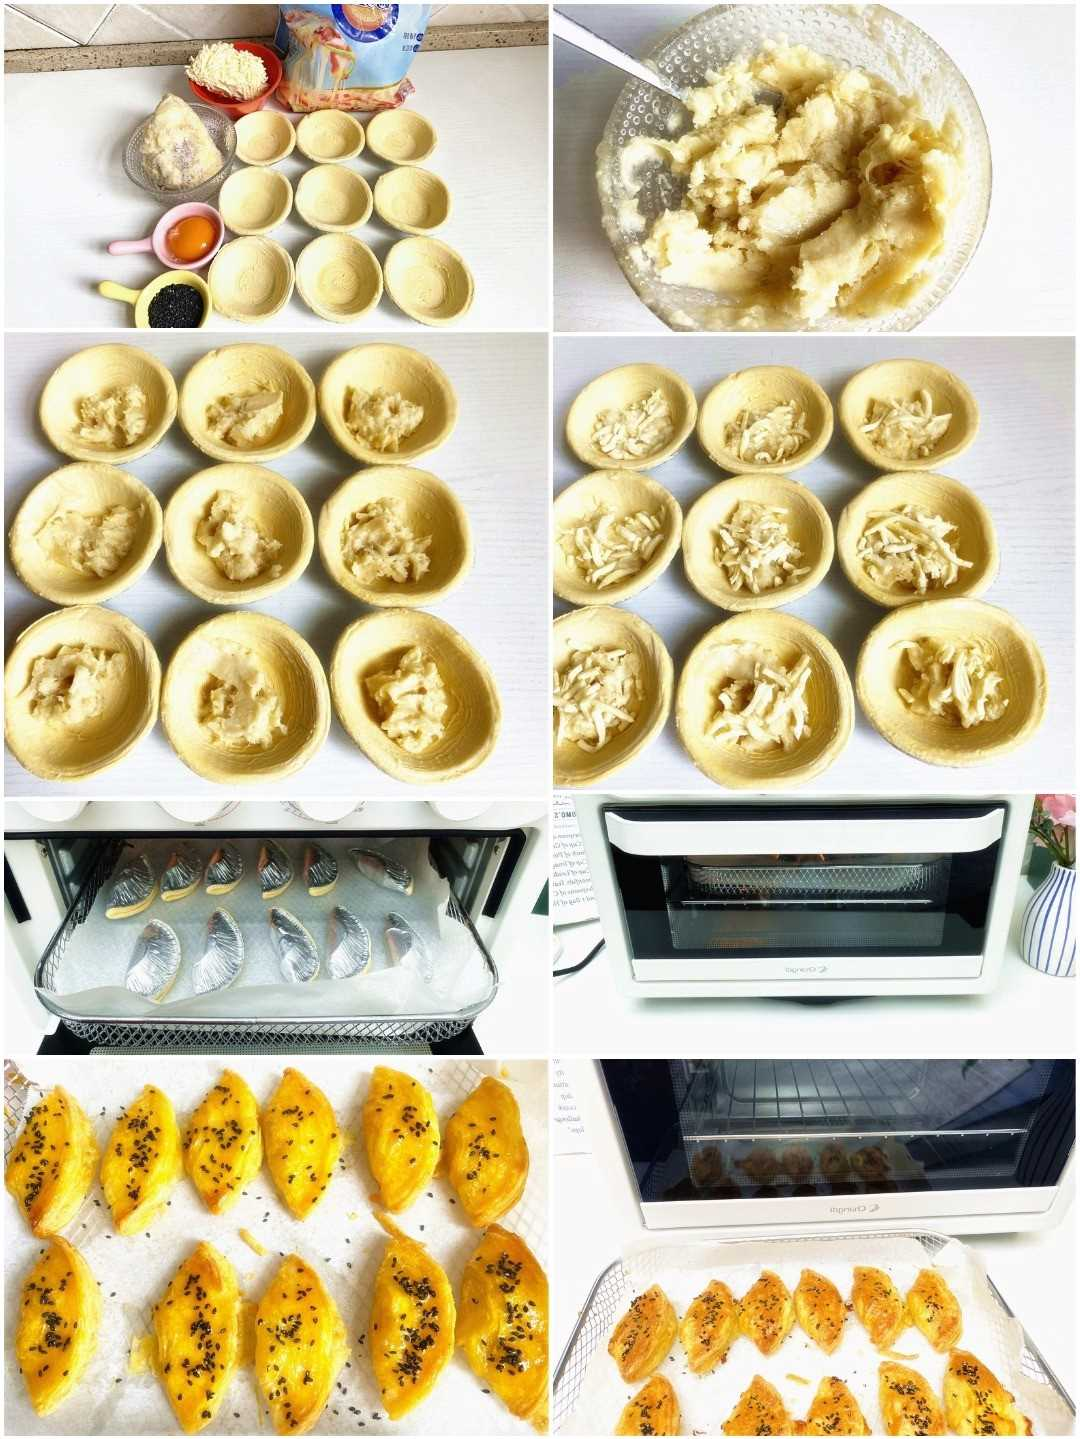 Crispy Durian Pastry Recipe Steps